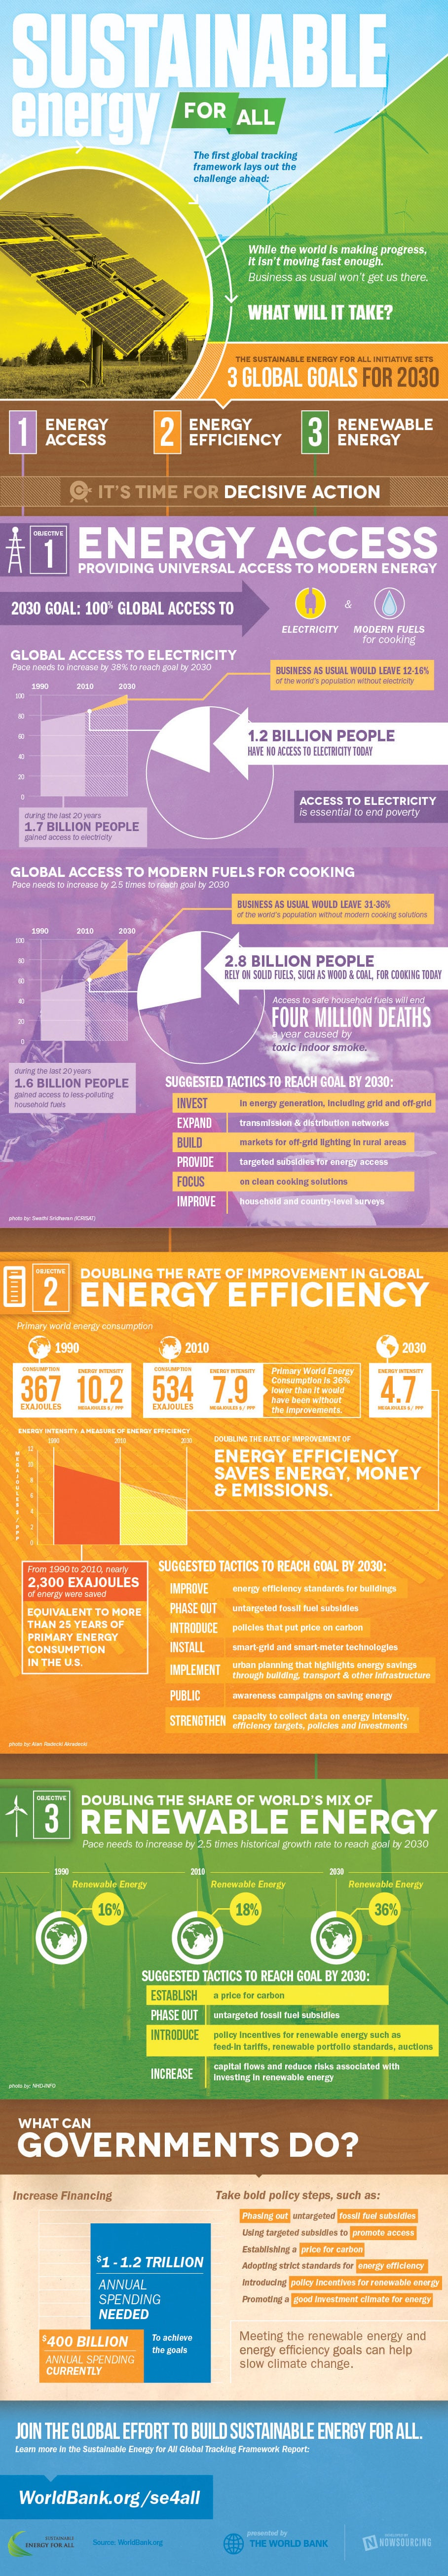 sustainable-energy-for-all-infographic